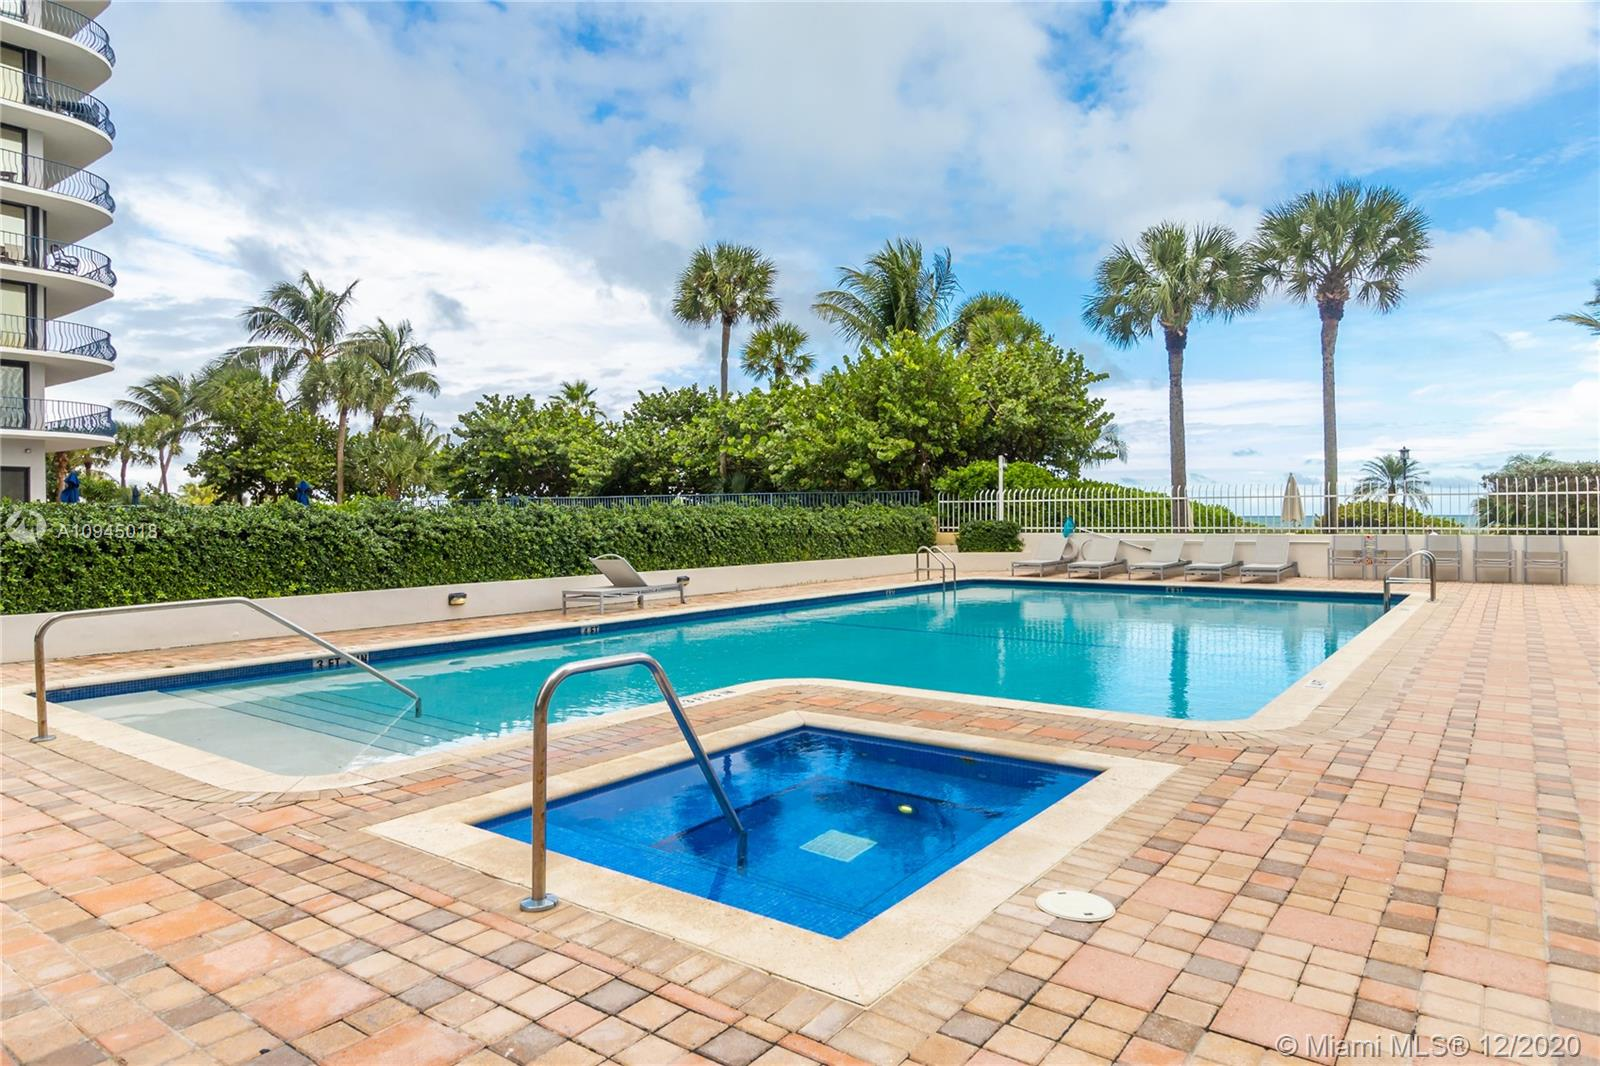 Champlain Towers East #3F - 8855 Collins Ave #3F, Surfside, FL 33154